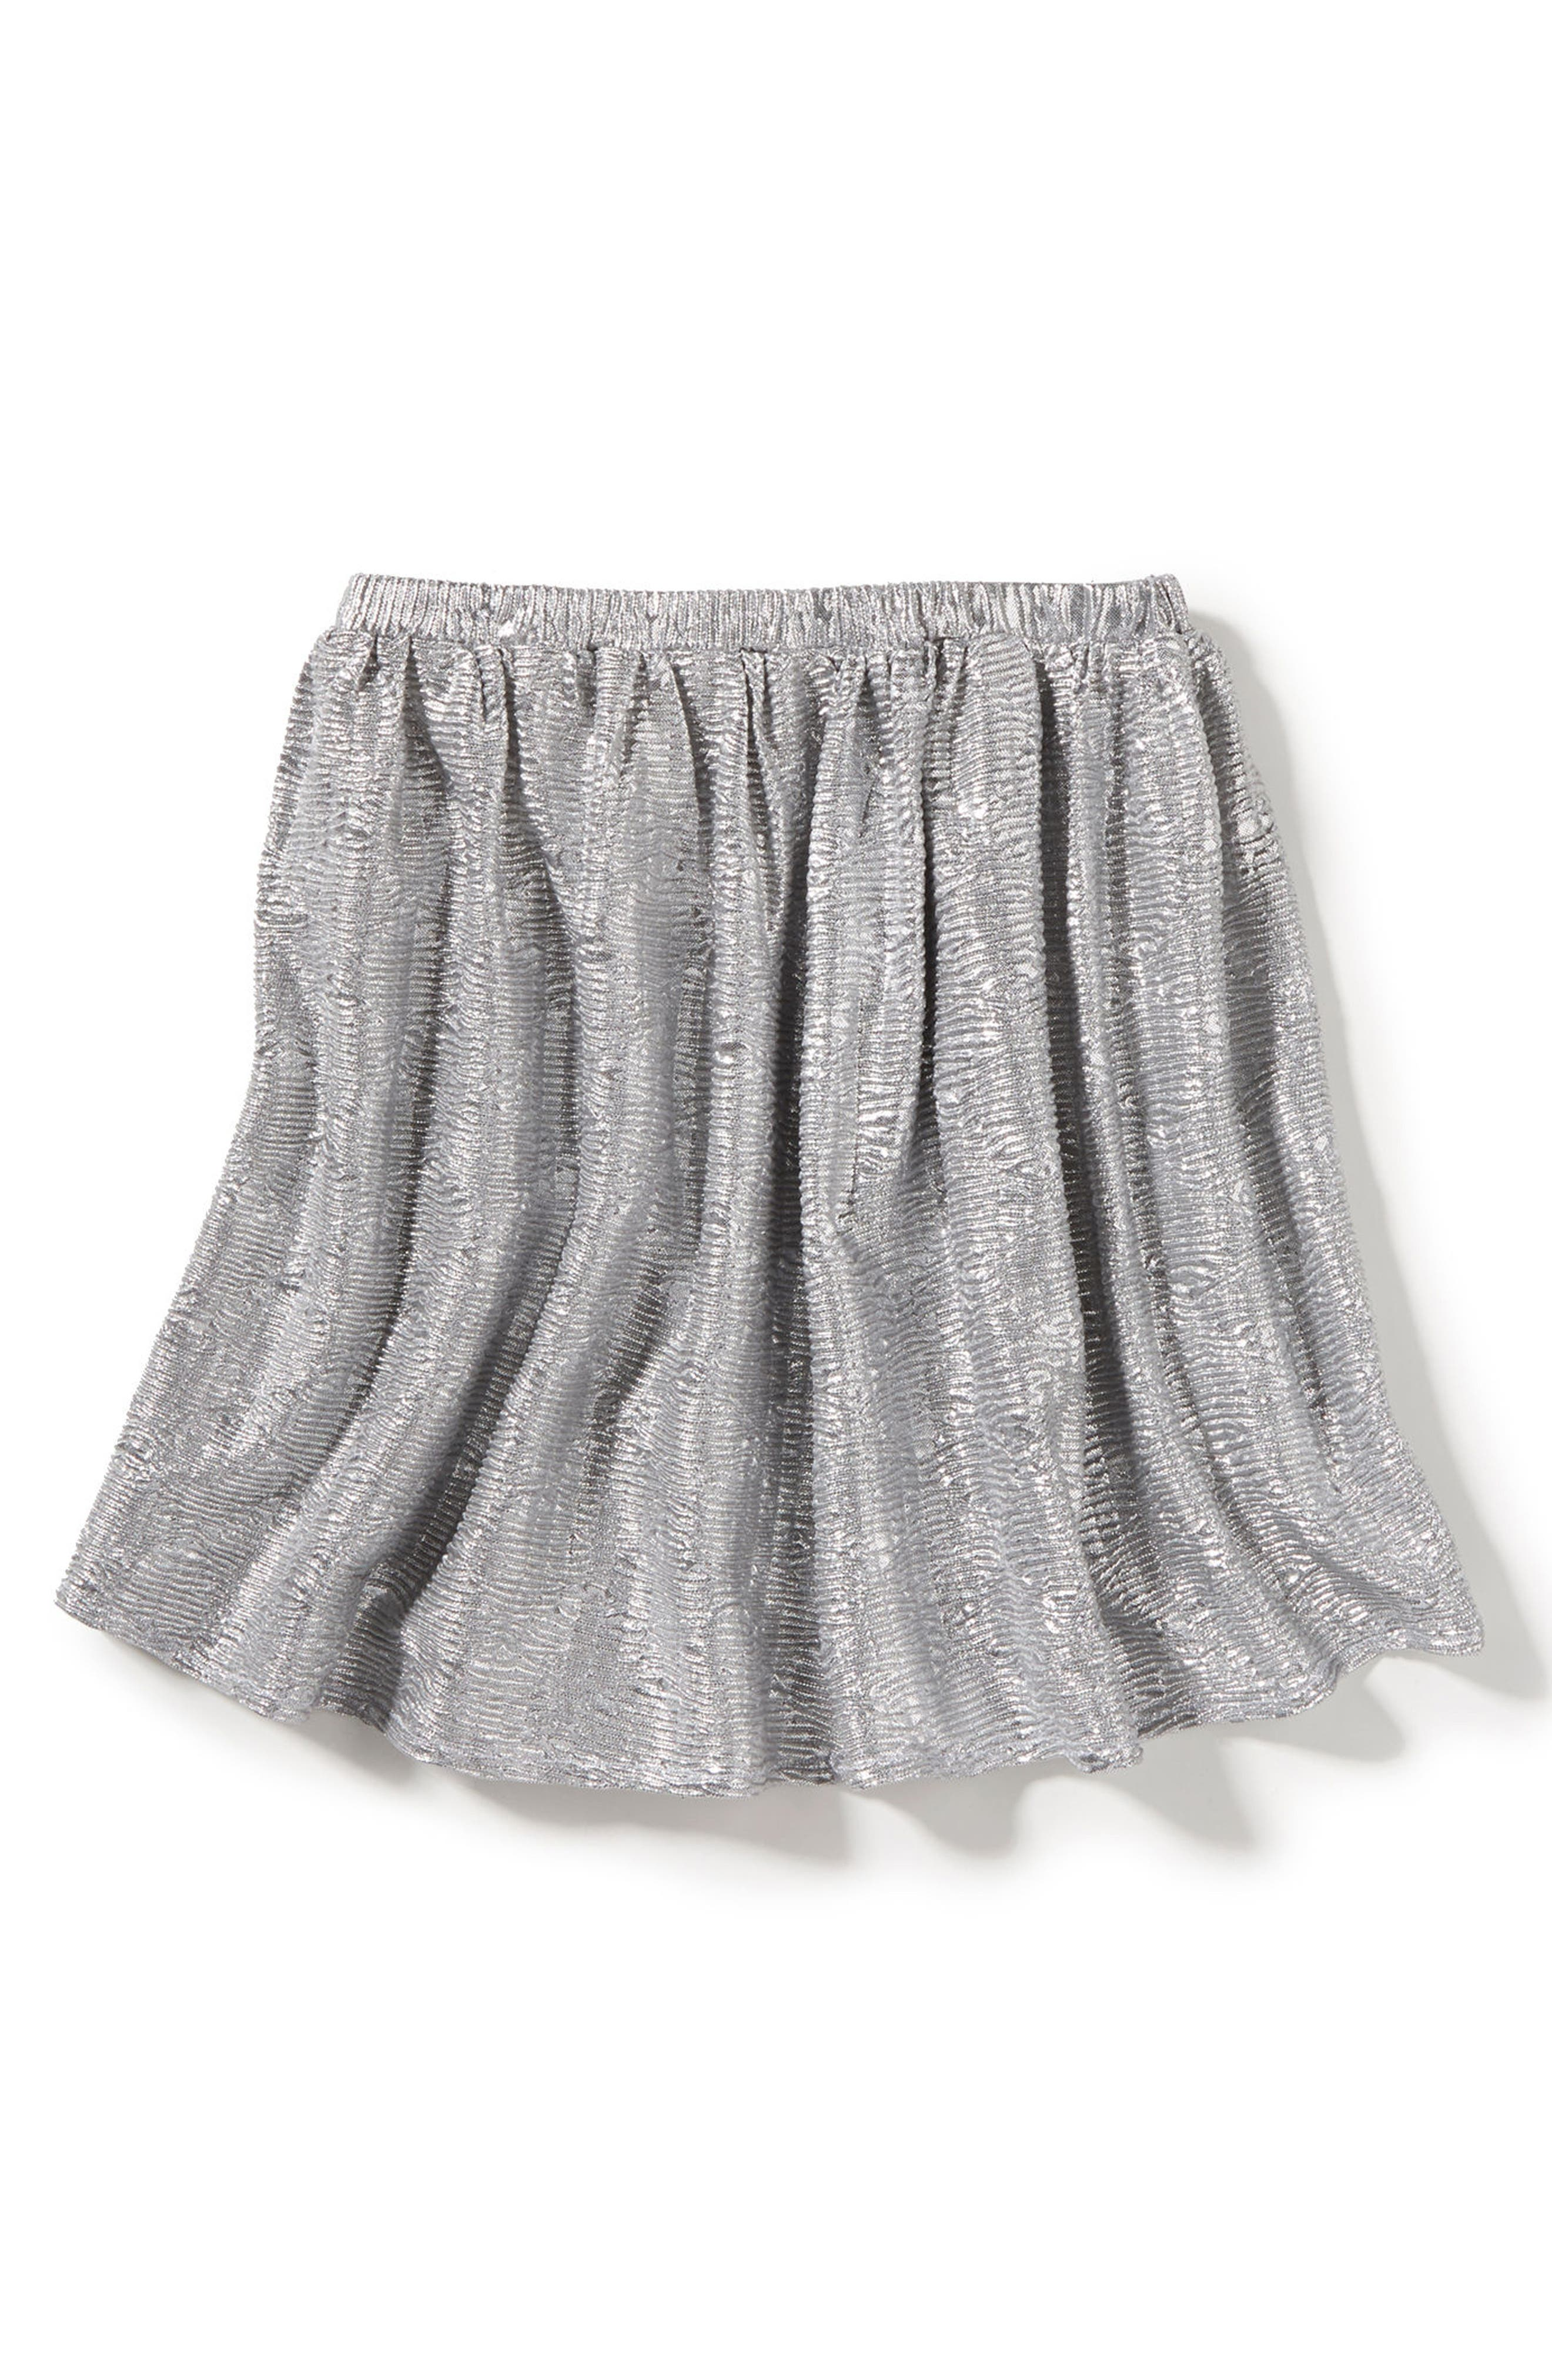 Marlow Metallic Skirt,                         Main,                         color, Silver